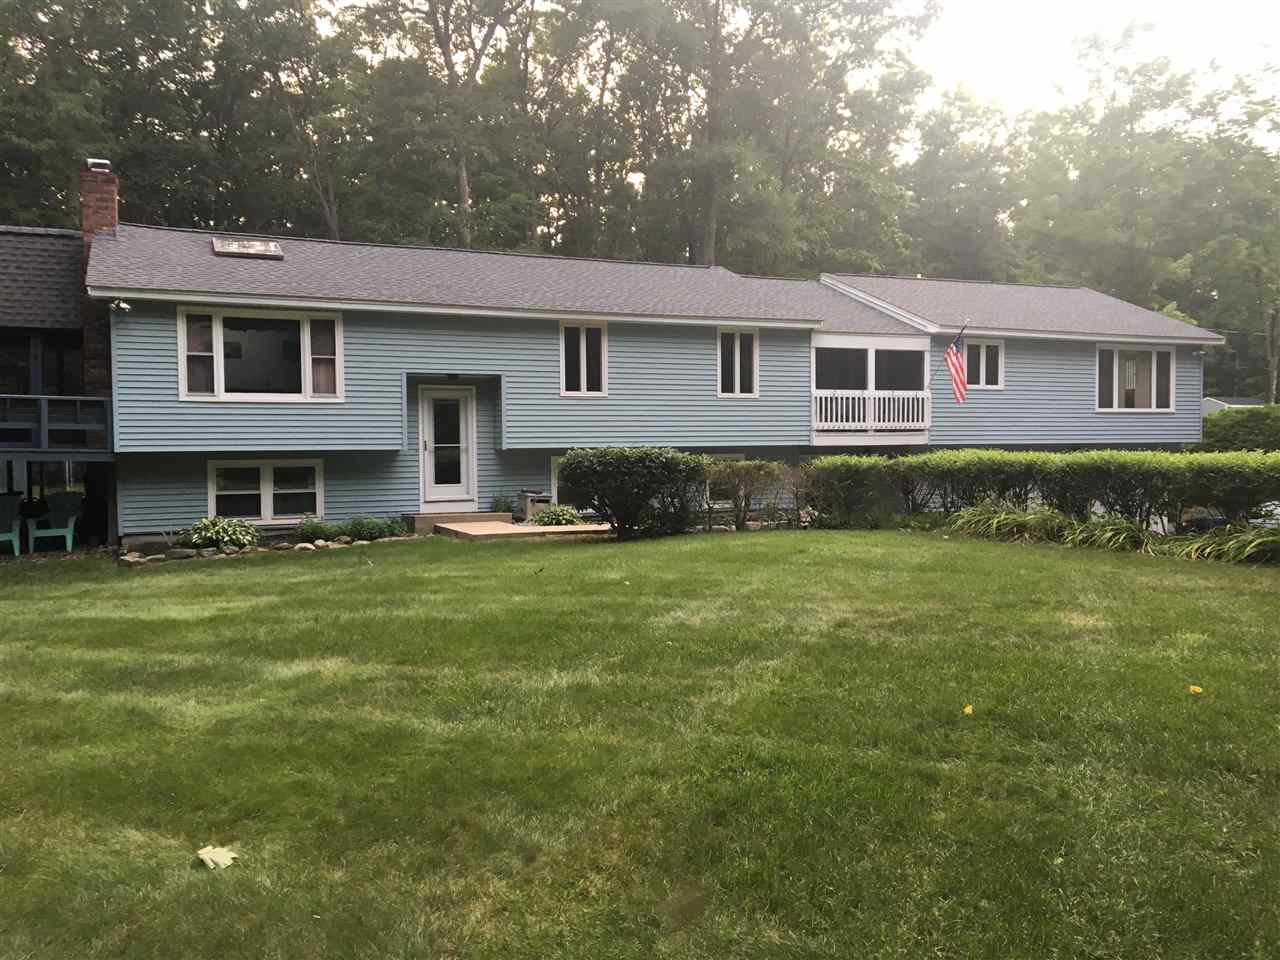 MLS 4781228: 18 Emerald Drive, Derry NH